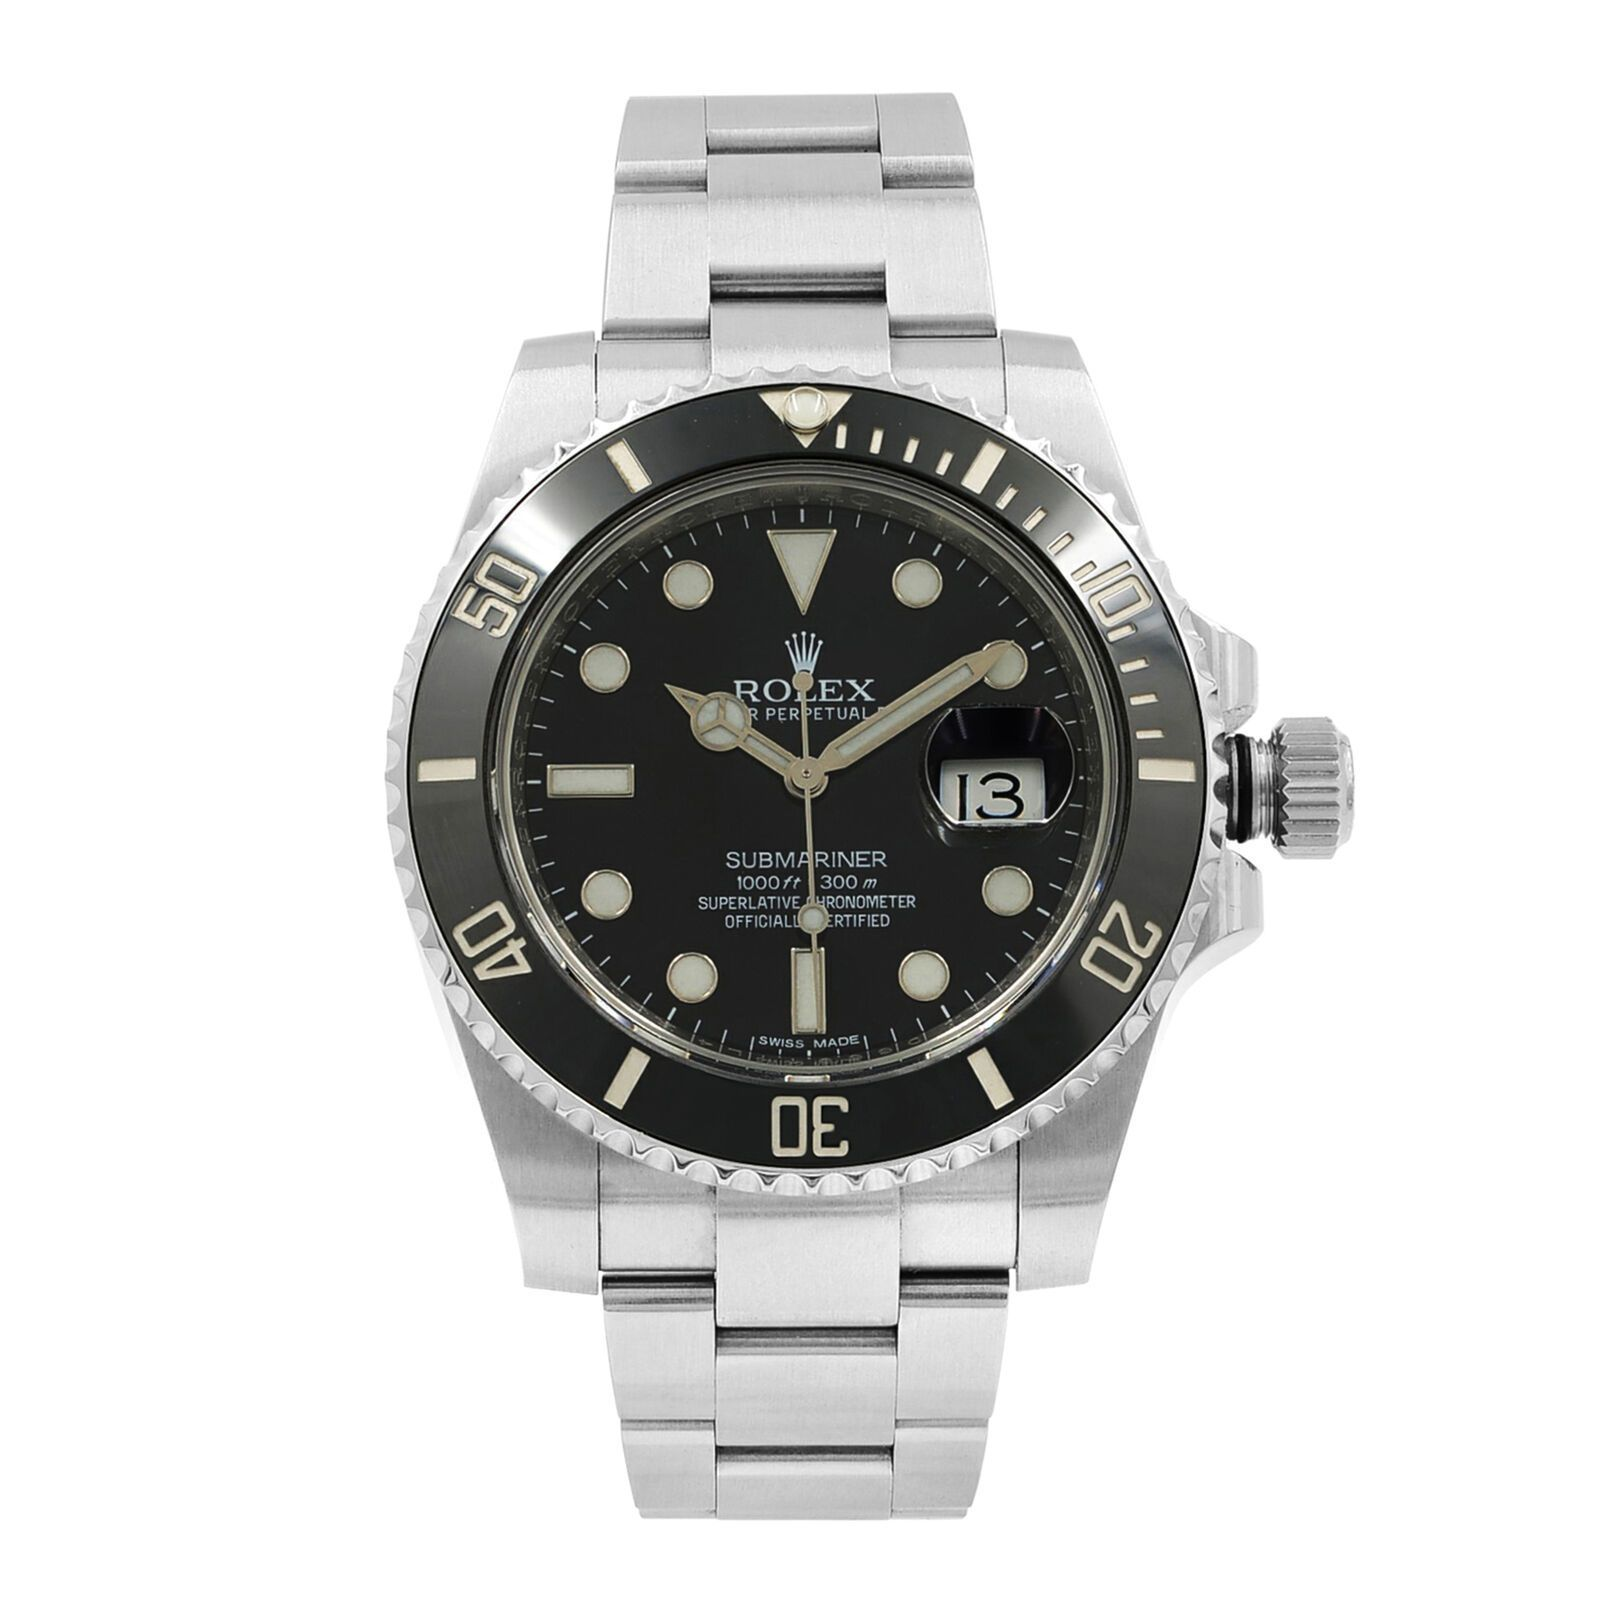 Rolex Submariner Black on Black 116610LN Stainless Steel Automatic Mens Watch #rolexsubmariner Rolex Submariner Black on Black 116610LN Stainless Steel Automatic Mens Watch #rolexsubmariner Rolex Submariner Black on Black 116610LN Stainless Steel Automatic Mens Watch #rolexsubmariner Rolex Submariner Black on Black 116610LN Stainless Steel Automatic Mens Watch #rolexsubmariner